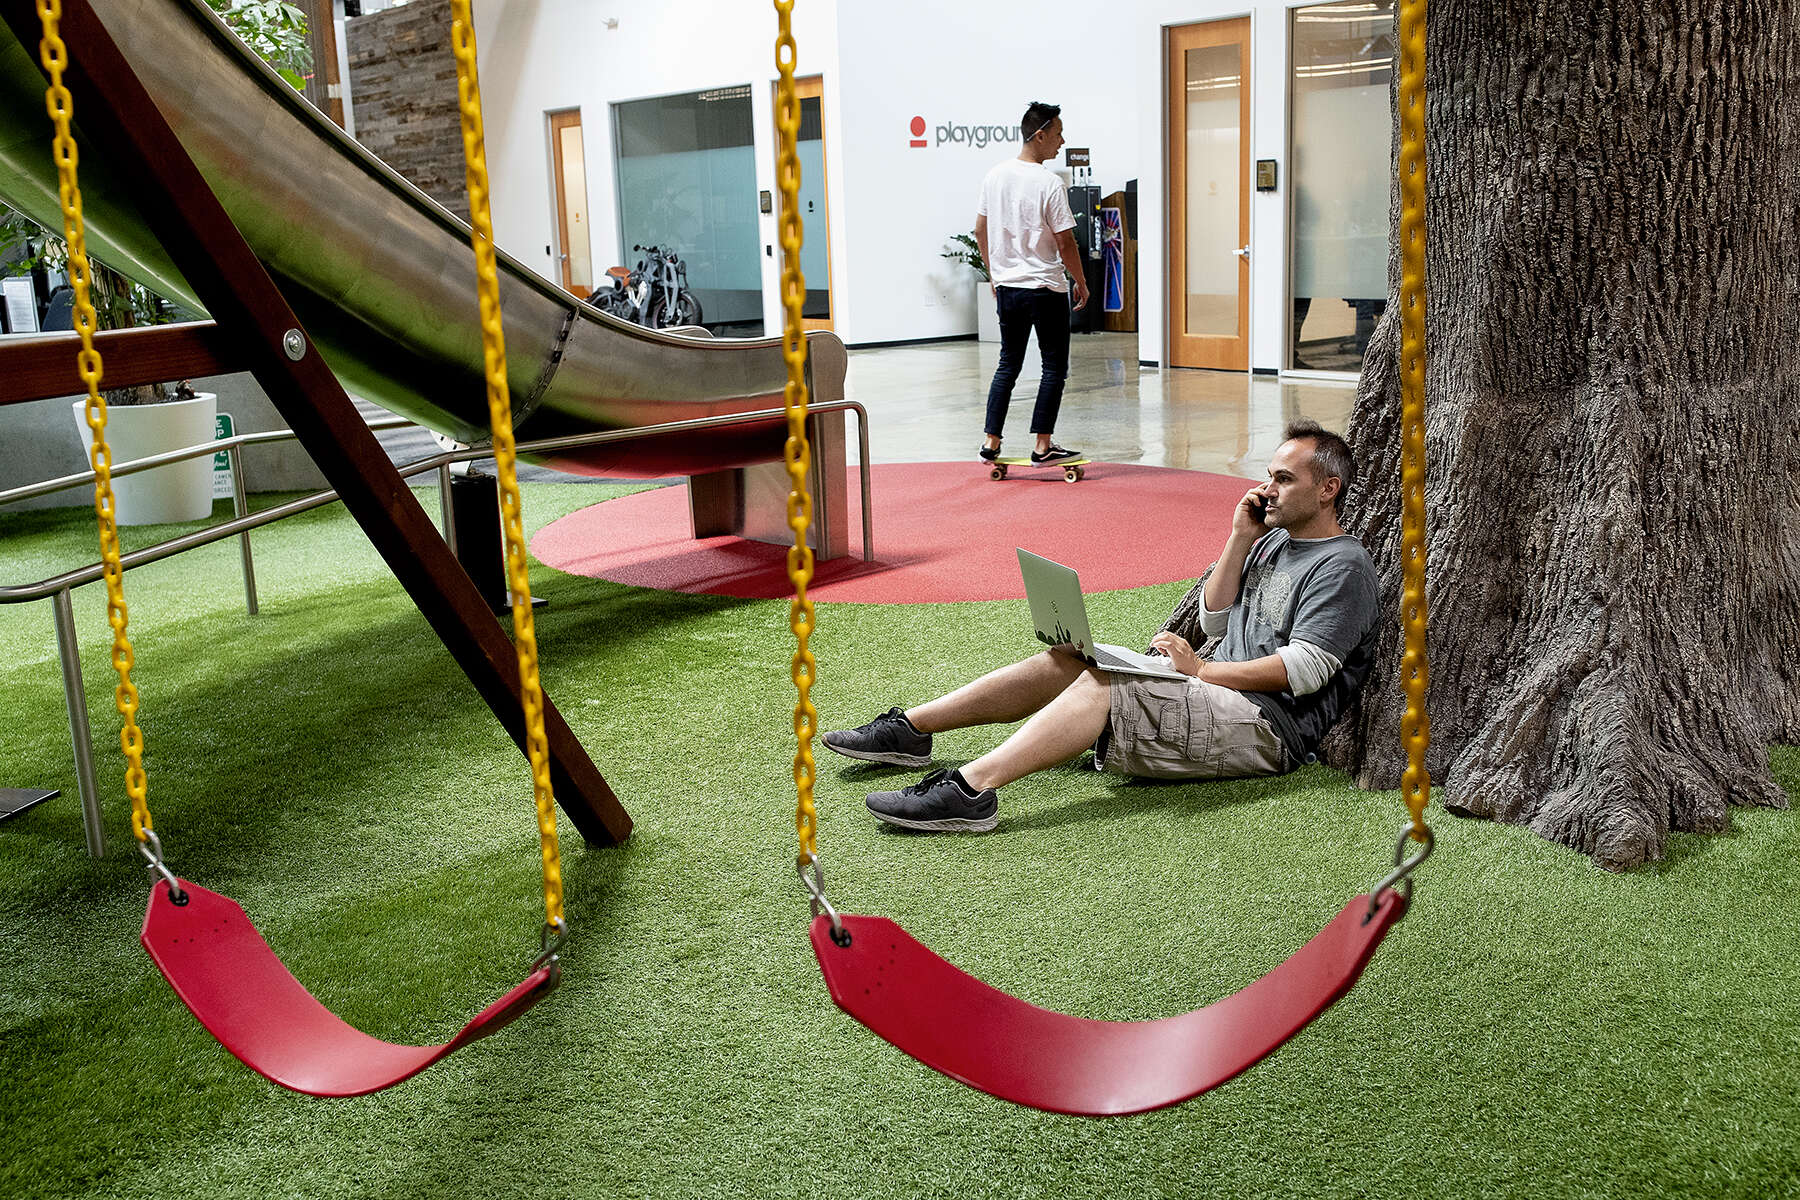 "Joshua Carpentier, an employee at the time at a start-up named Essential, works in the playground area at the offices of technology incubator Playground Global in Palo Alto, Calif., on August 16, 2018. Playground funds and supports start-ups developing new technology, with a focus on artificial intelligence. Carpentier says, ""I always made a point of going down the slide once a day. It was a good reminder to have fun and never take what you do too seriously."""